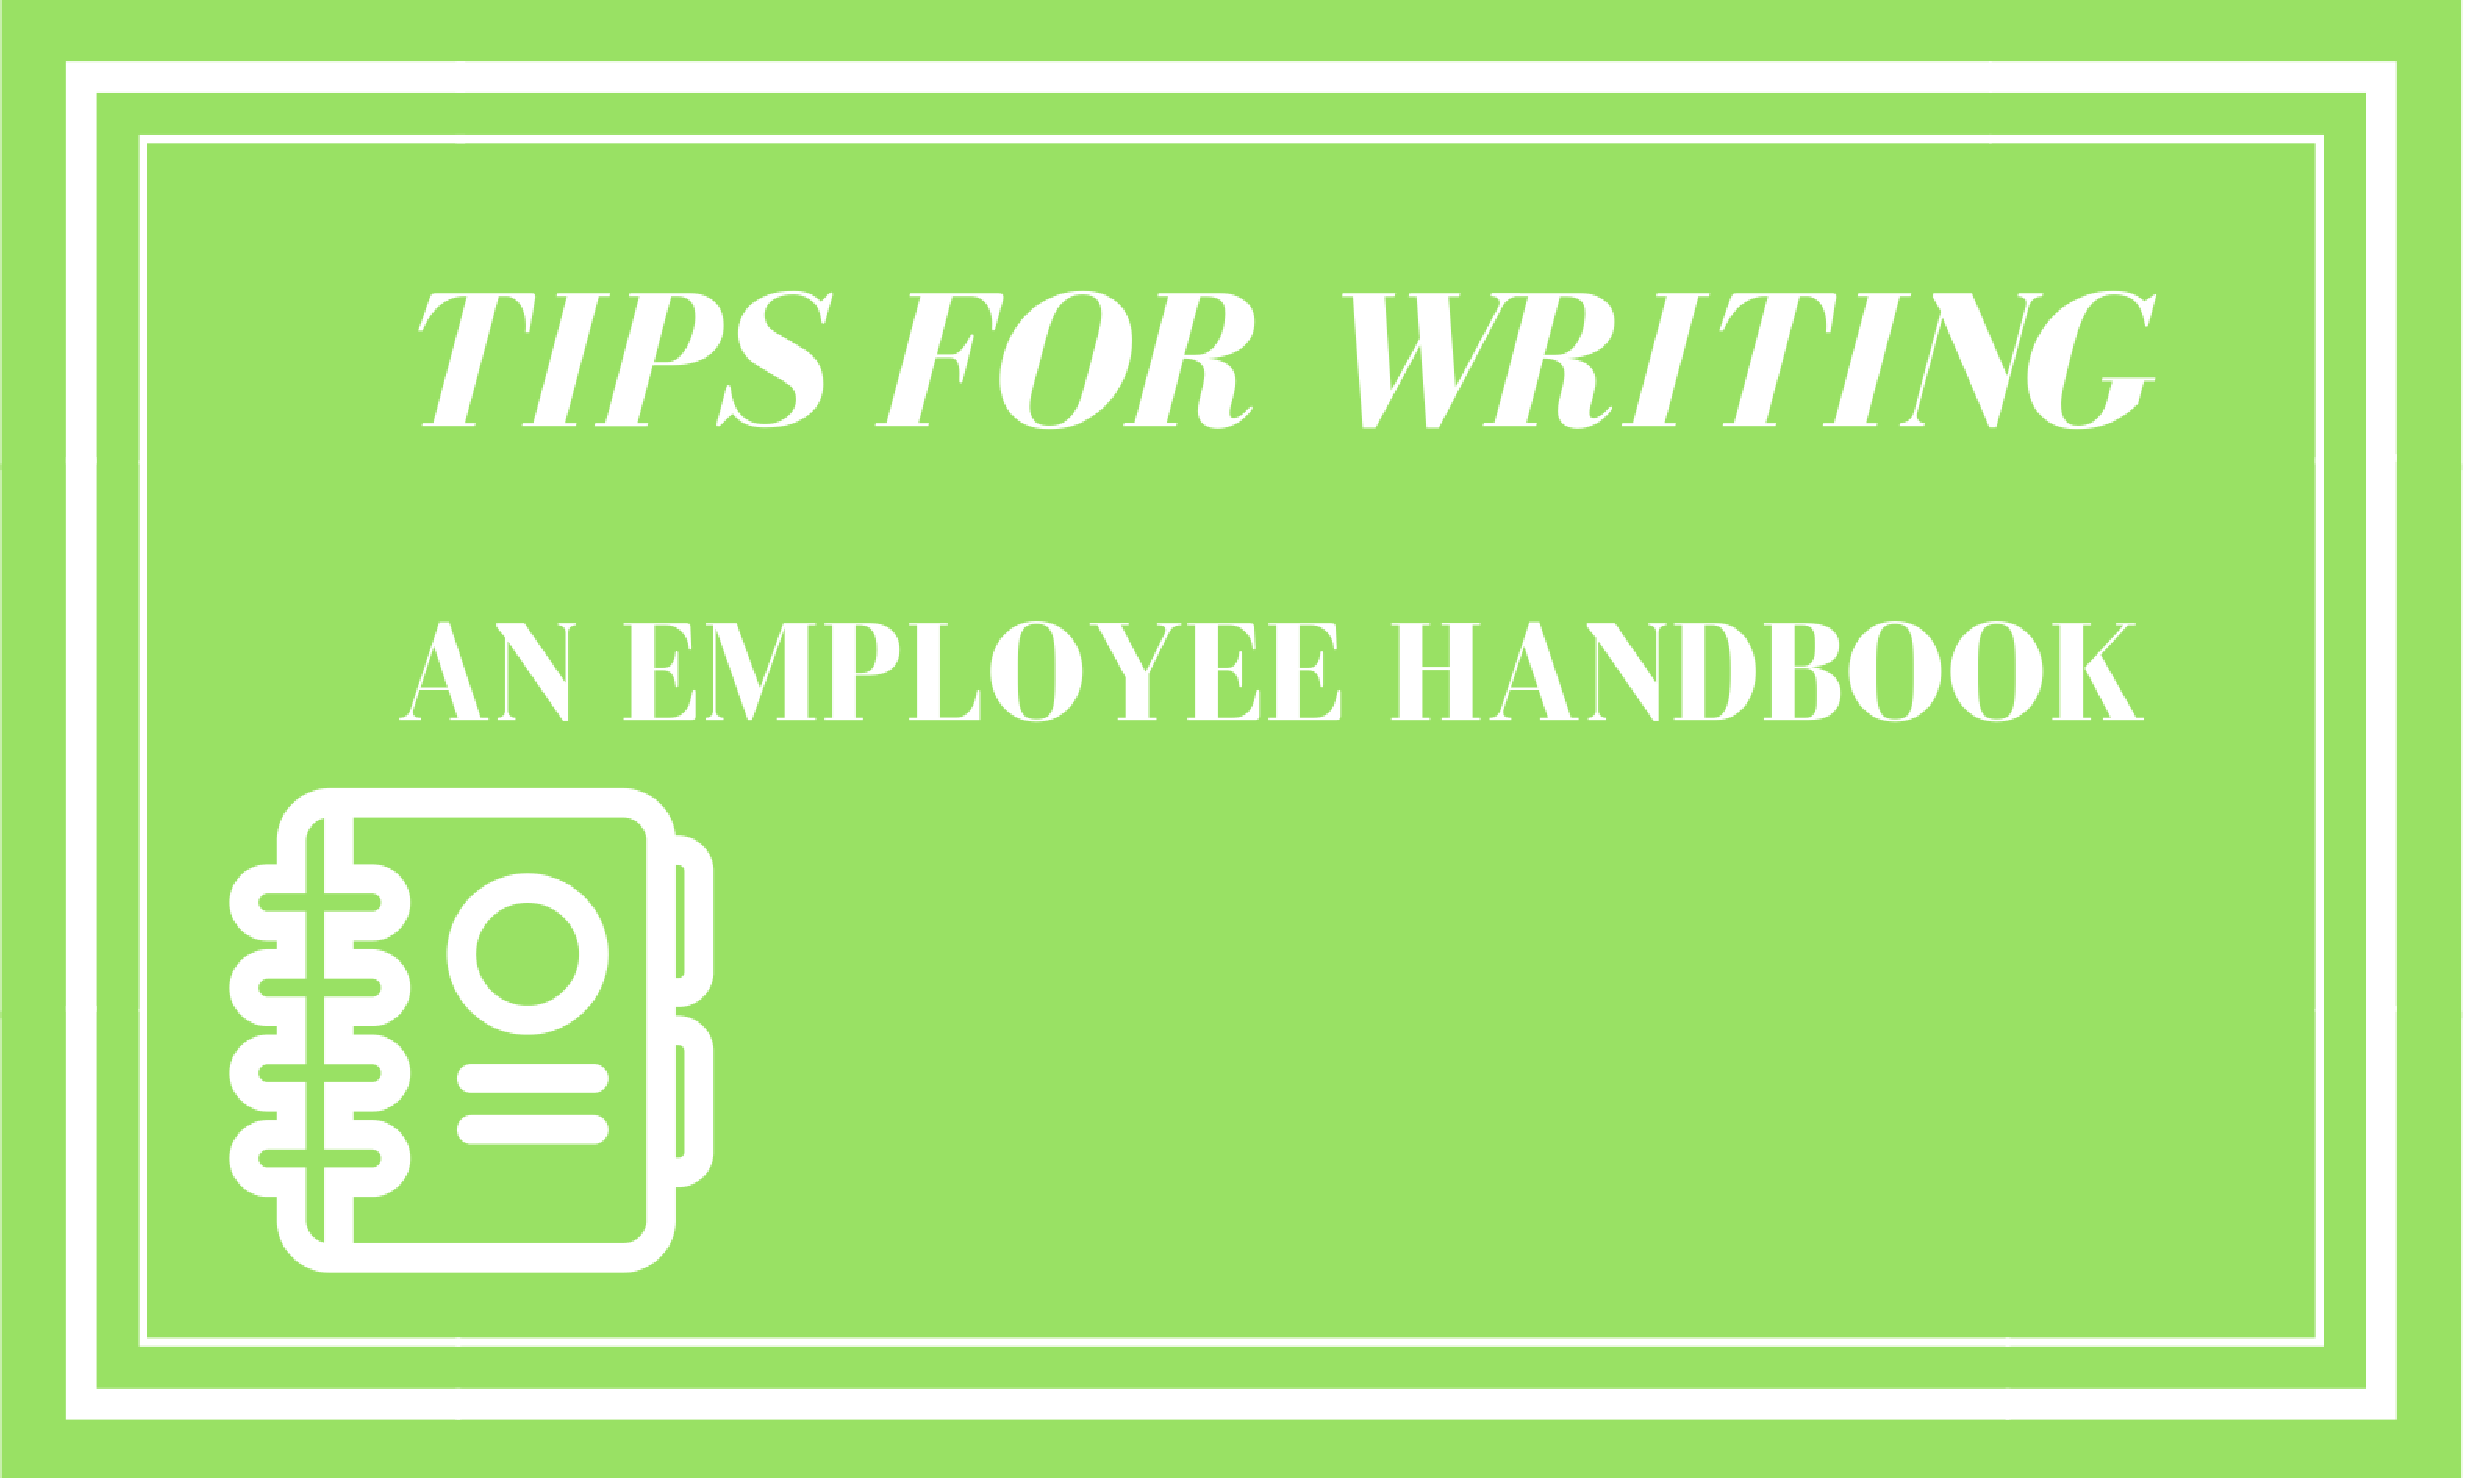 Tips For Writing An Employee Handbook